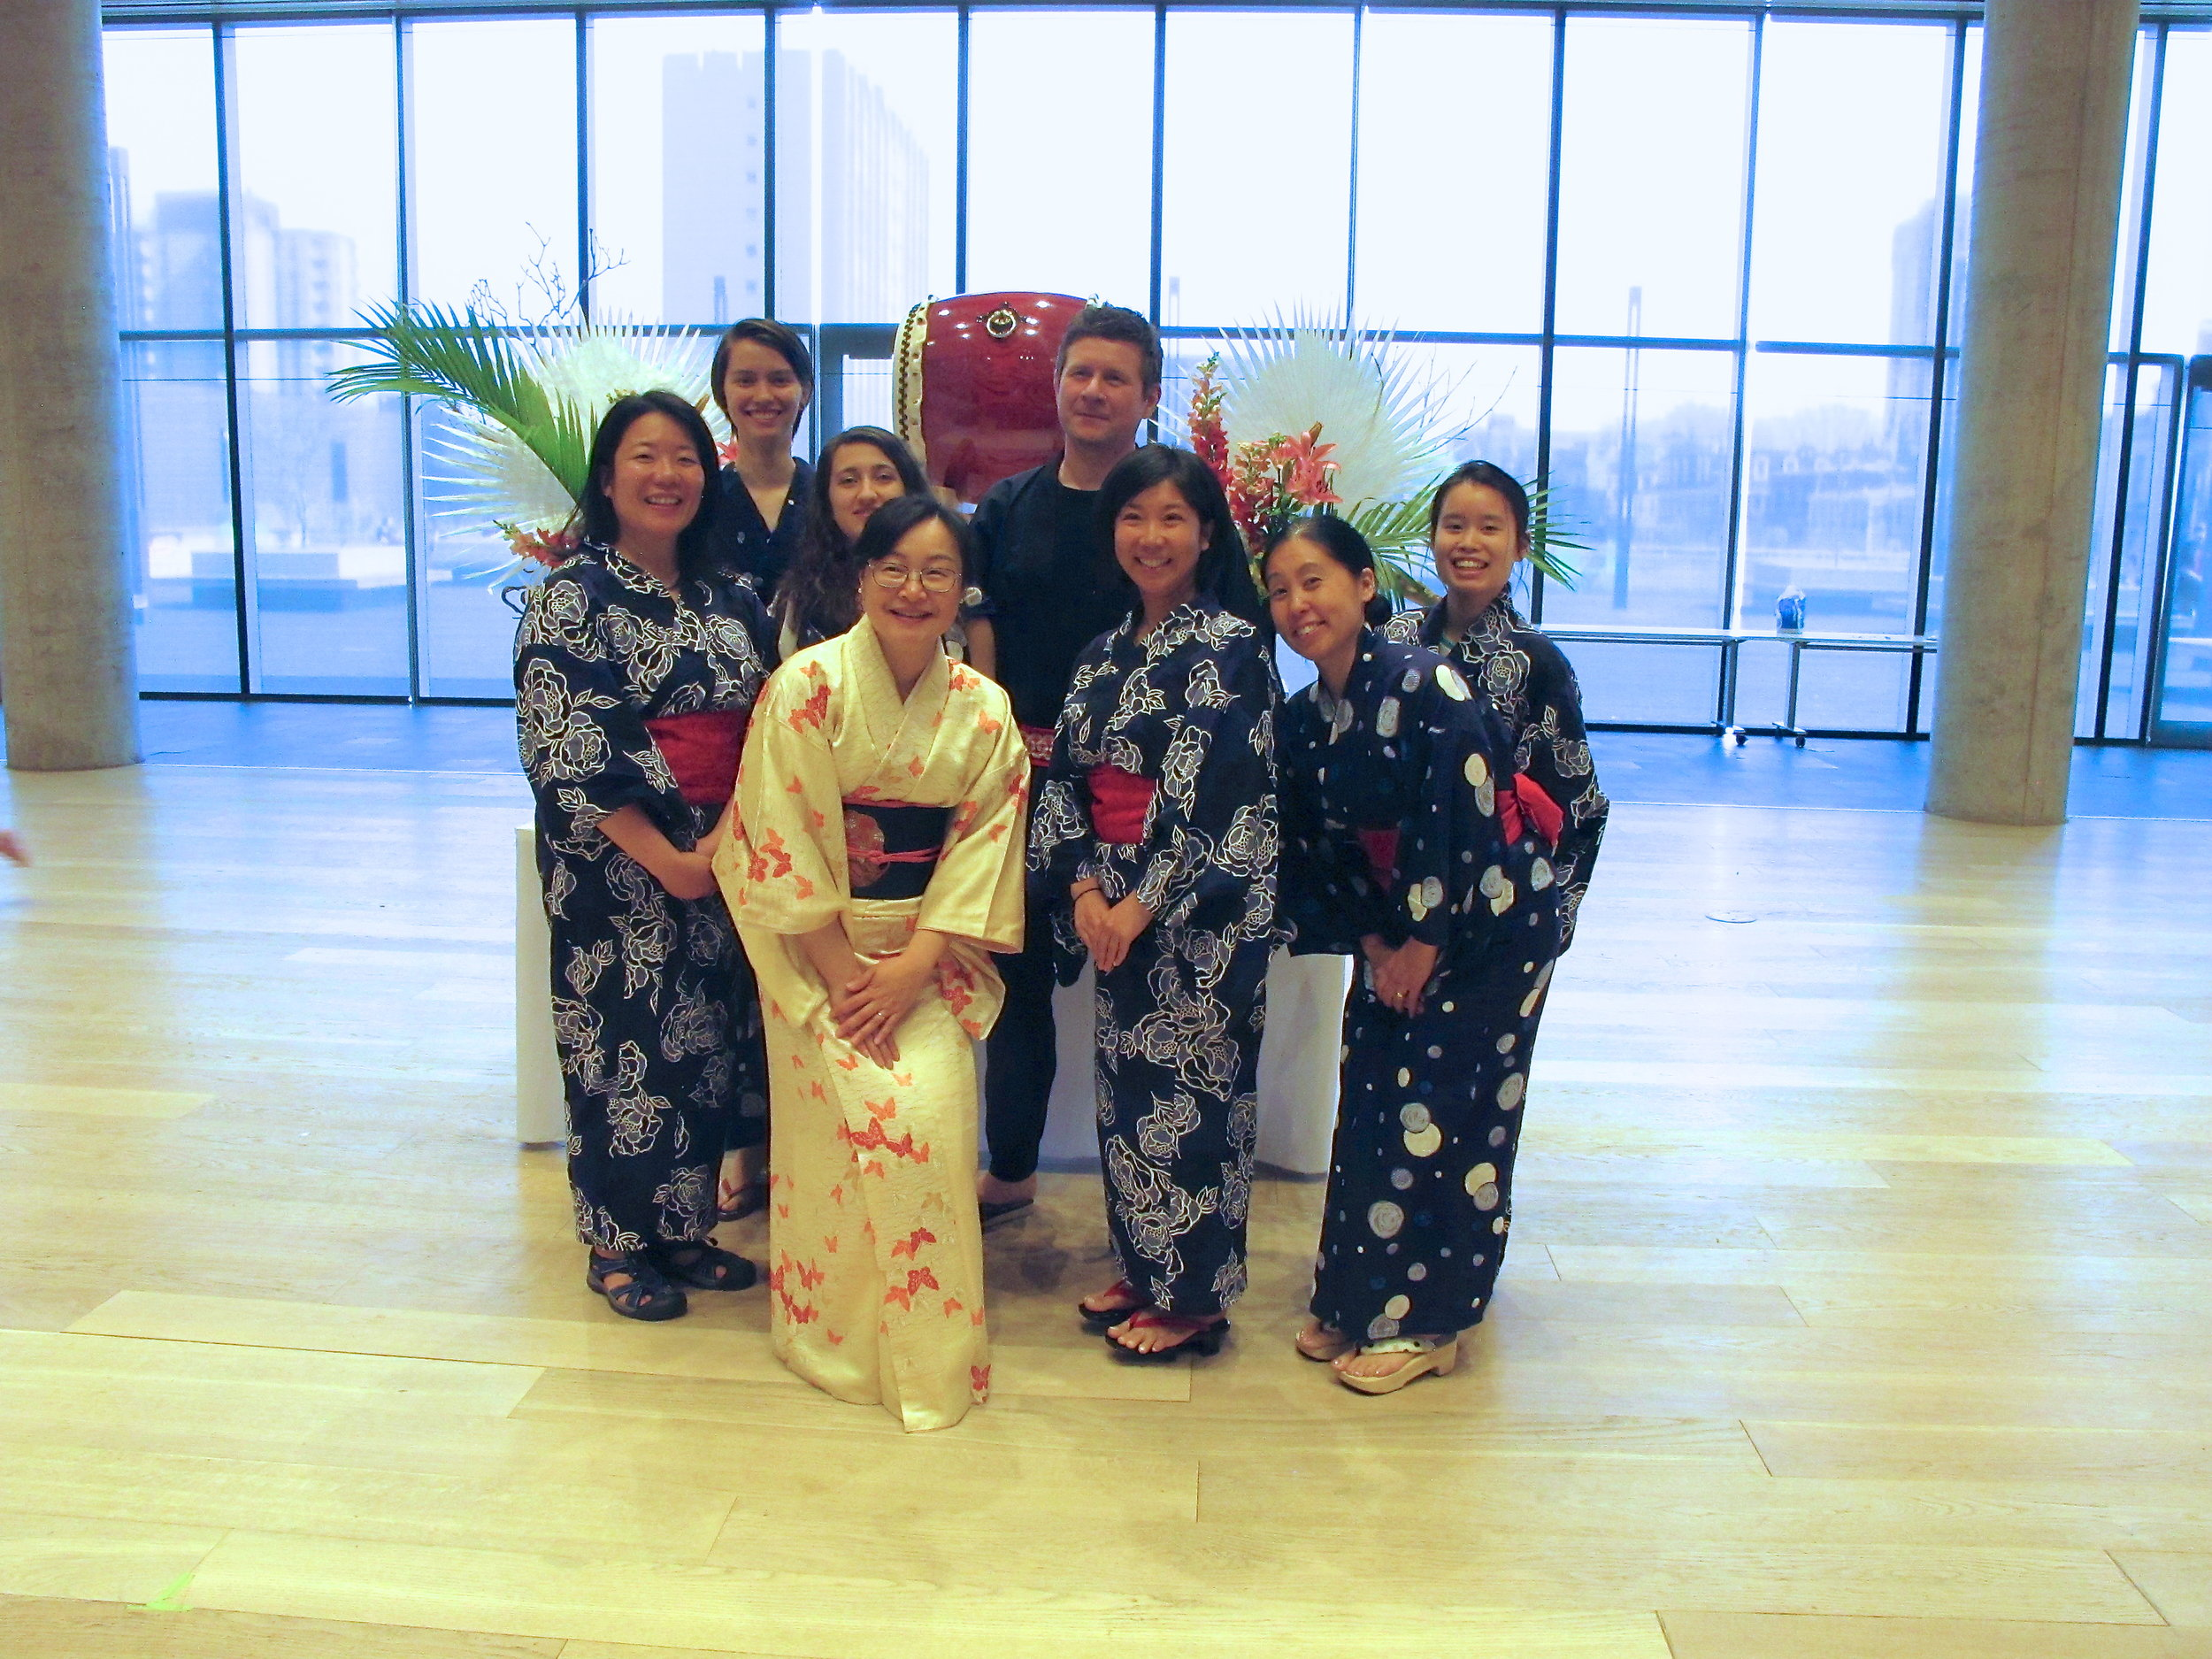 Here's a fun photo with the St. Mary's University Wadaiko (Japanese drums) group. They gave a very exciting performance too!